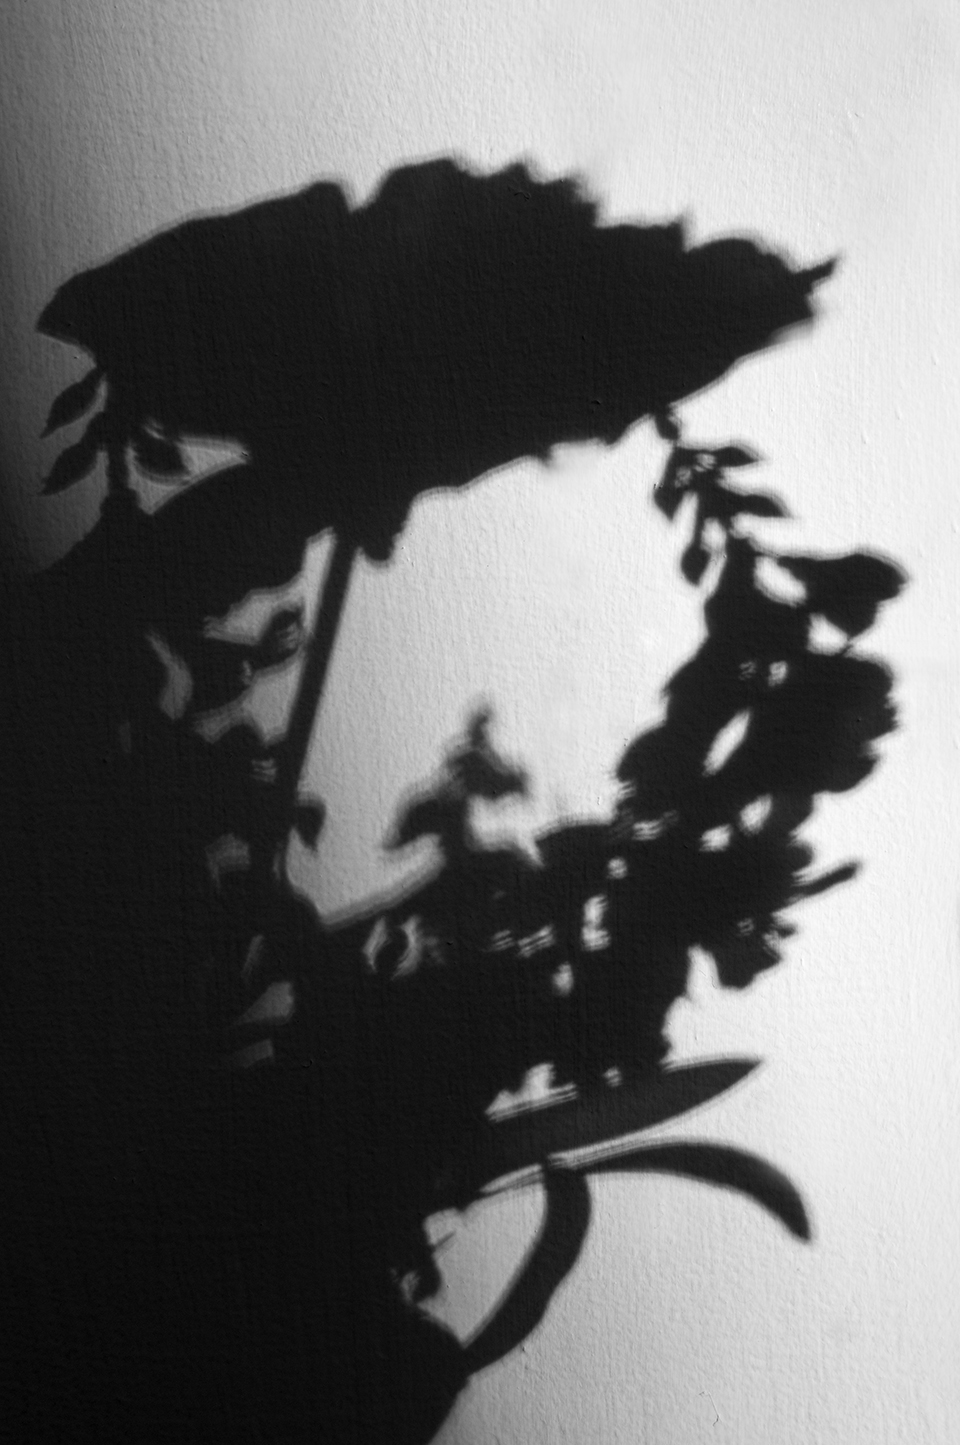 small-flower-shadow.jpg